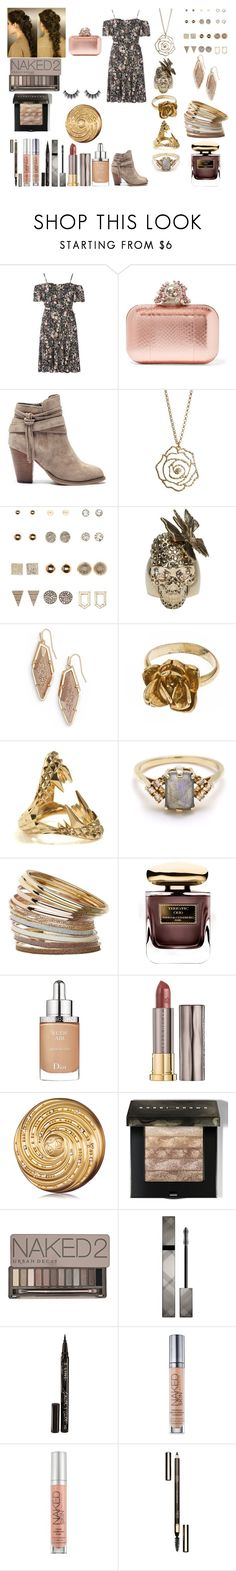 """Untitled #752"" by asiebenthaler ❤ liked on Polyvore featuring Dorothy Perkins, Jimmy Choo, Sole Society, Aéropostale, Charlotte Russe, Alexander McQueen, Kendra Scott, Kasun, BEA and Miss Selfridge"